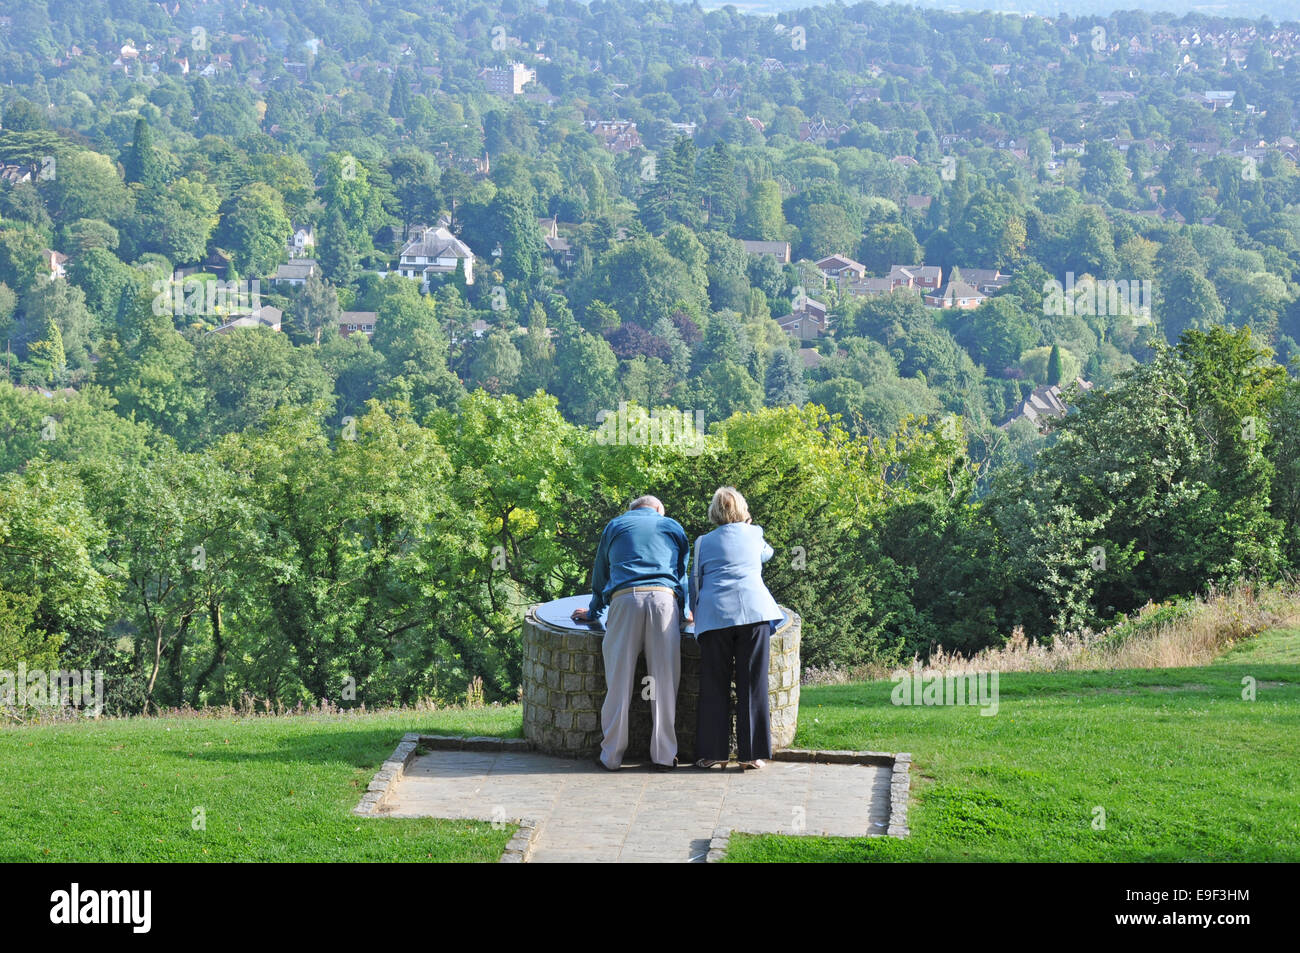 An elderly couple overlooking the locality at a viewpoint on Reigate Hill, Surrey, England, UK. - Stock Image